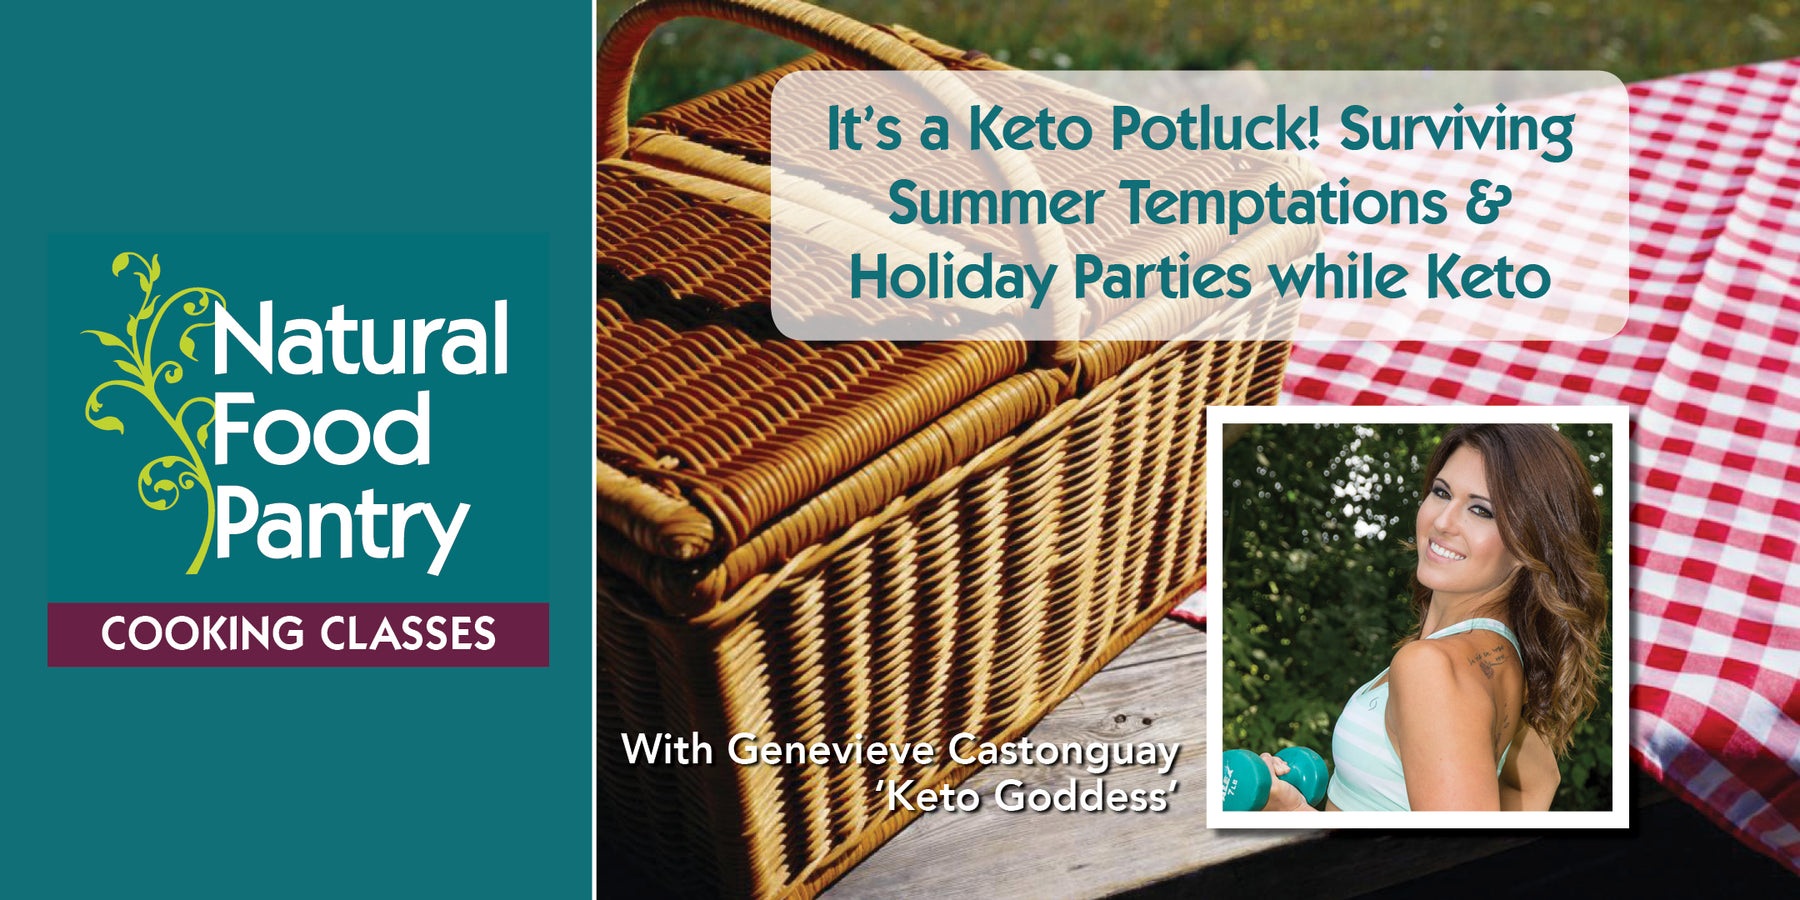 Jun 27: NFP Cooking Class: It's a Keto Potluck! Surviving Summer Temptations & Parties while Keto